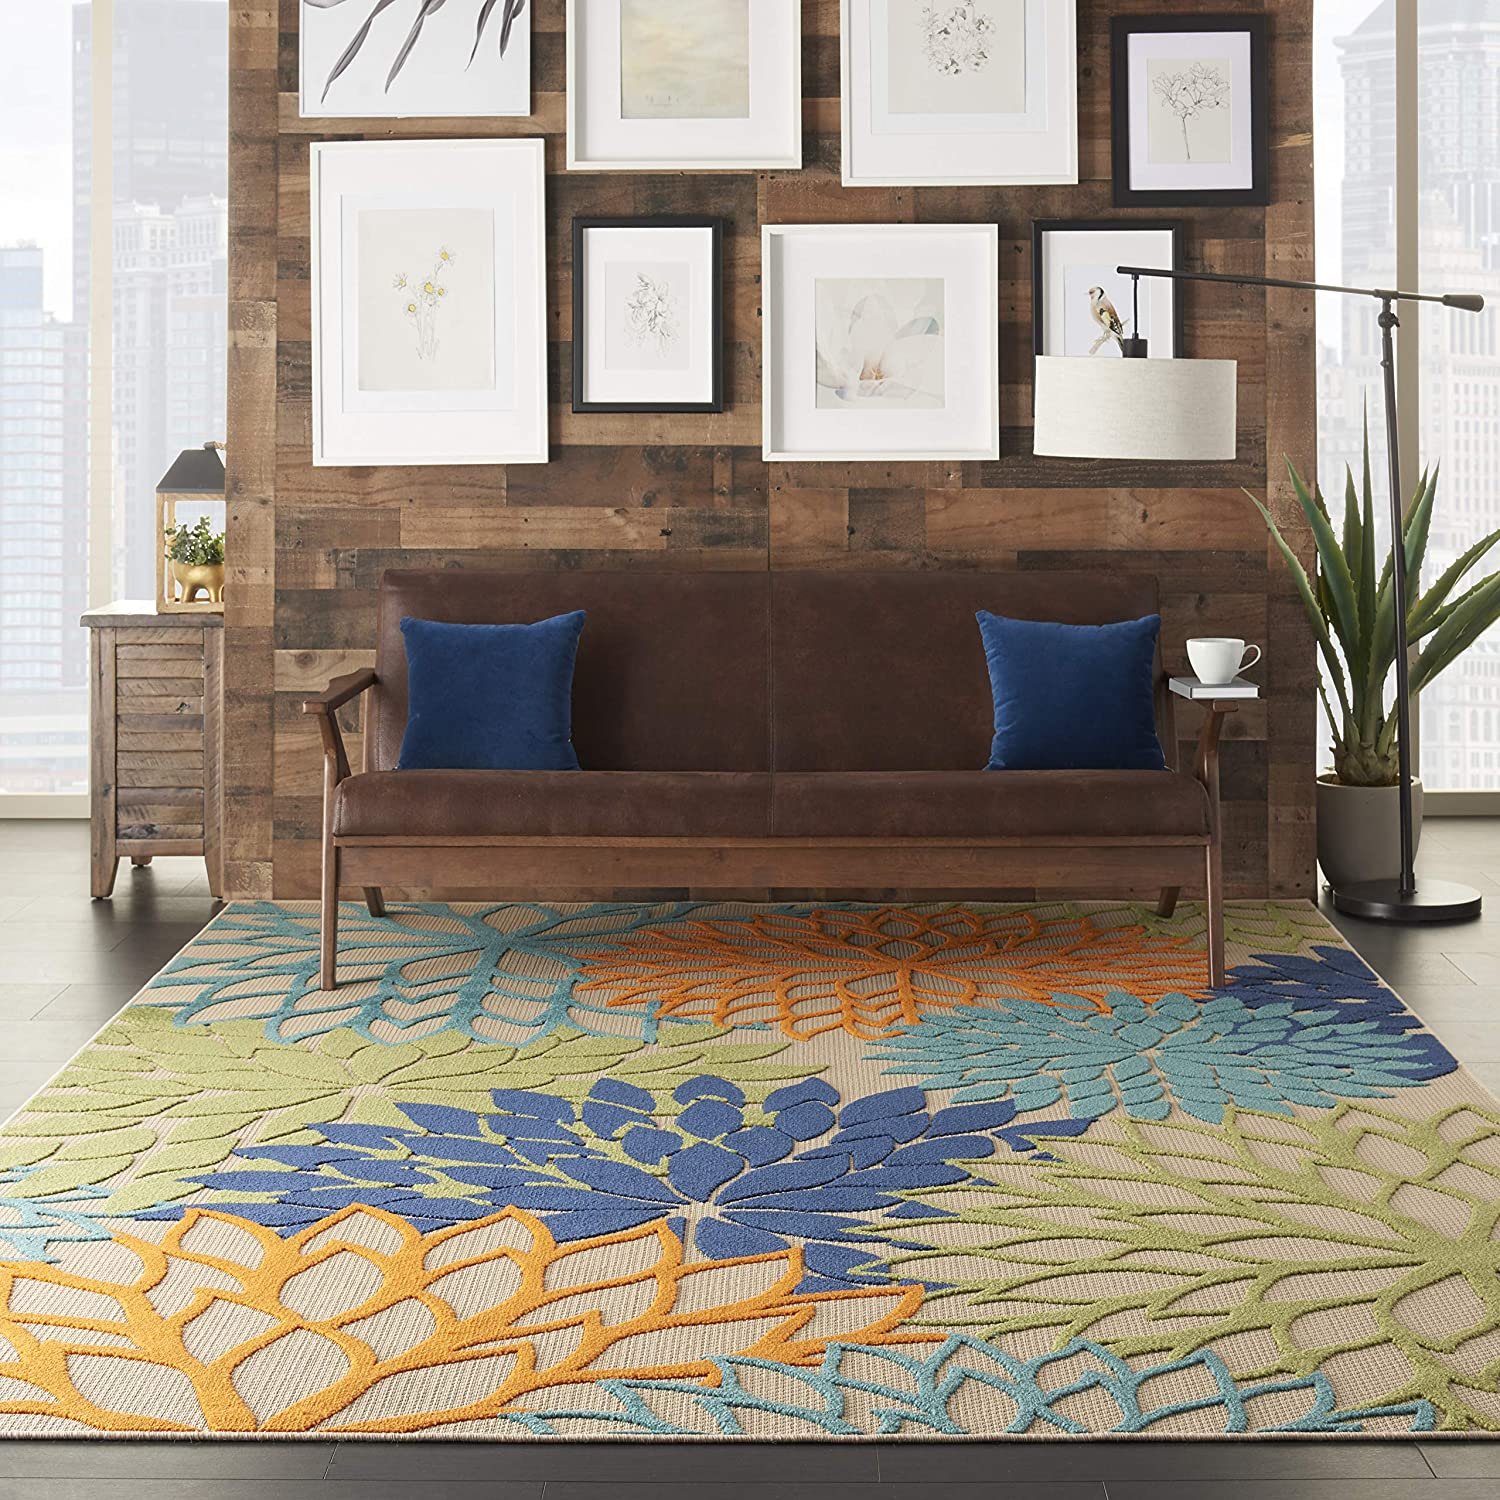 multicolor natural rug with plants